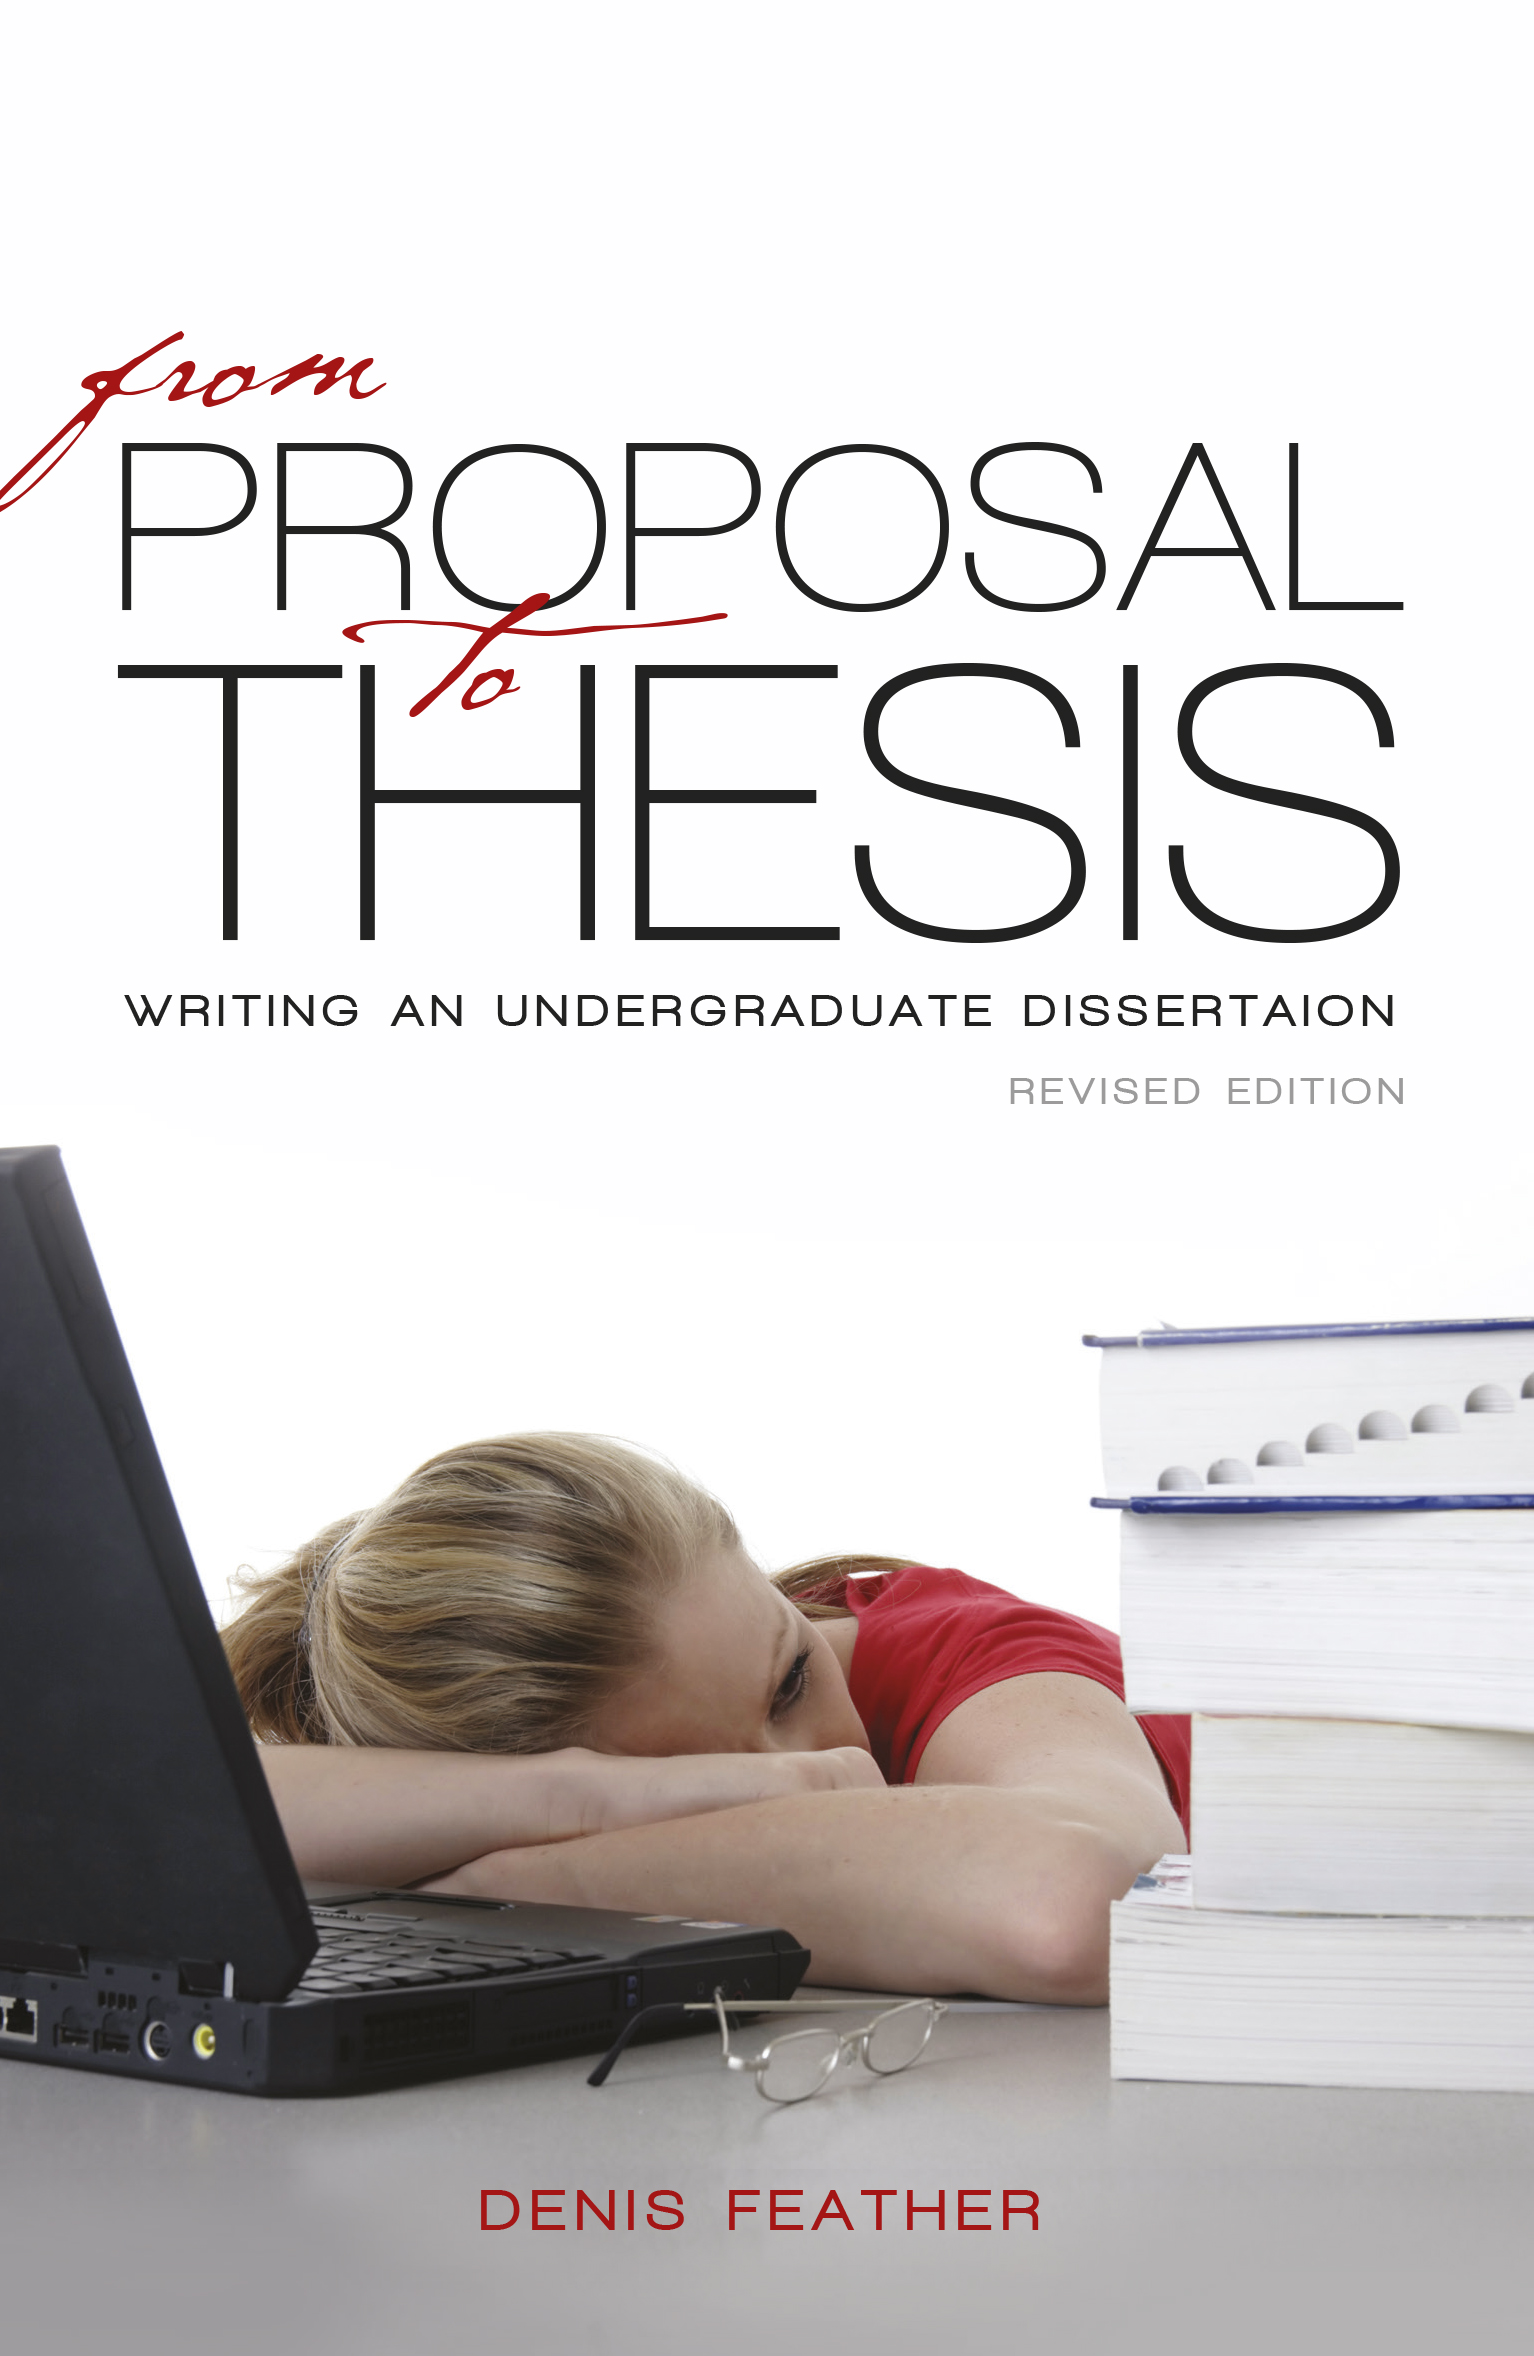 to thesis writing Moving from prompt to thesis--how to turn a prompt into a thesis statement your writing prompt will shape your writing project you must be sure to fully answer the.